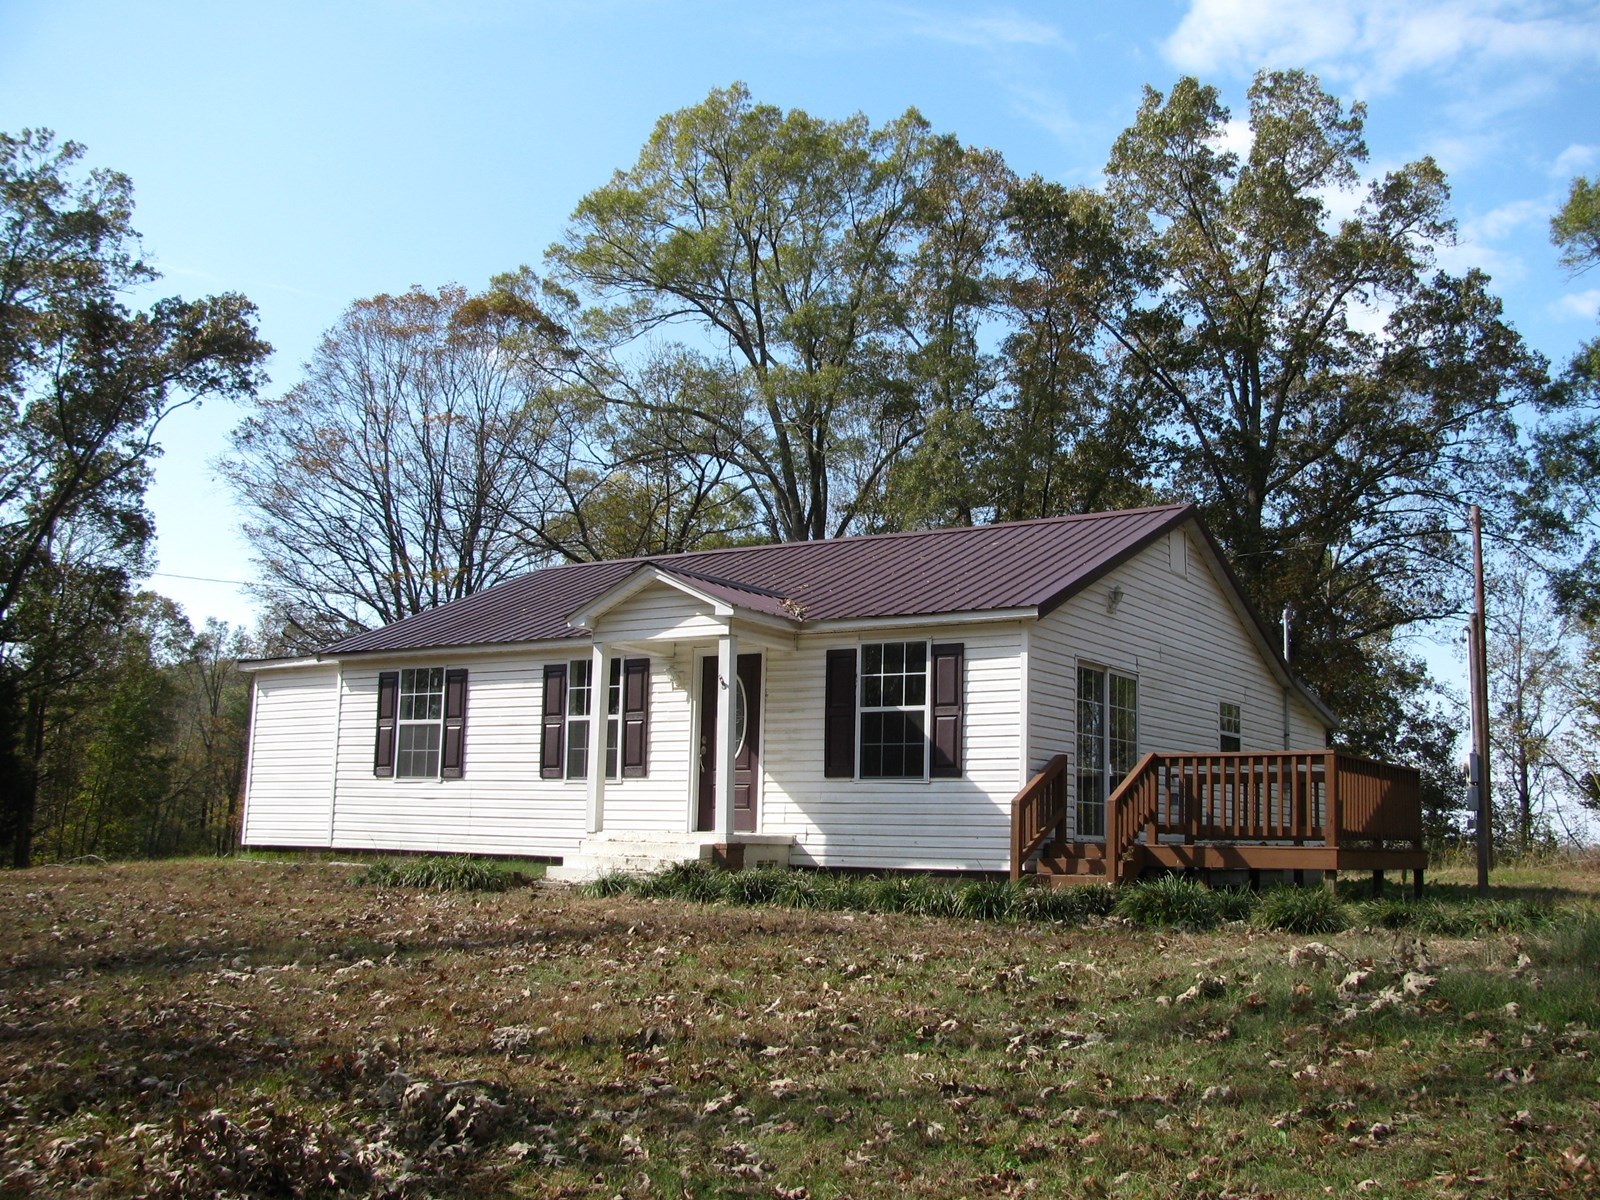 COUNTRY HOME ON 2.7+/- ACRES IN HARDIN COUNTY, TN